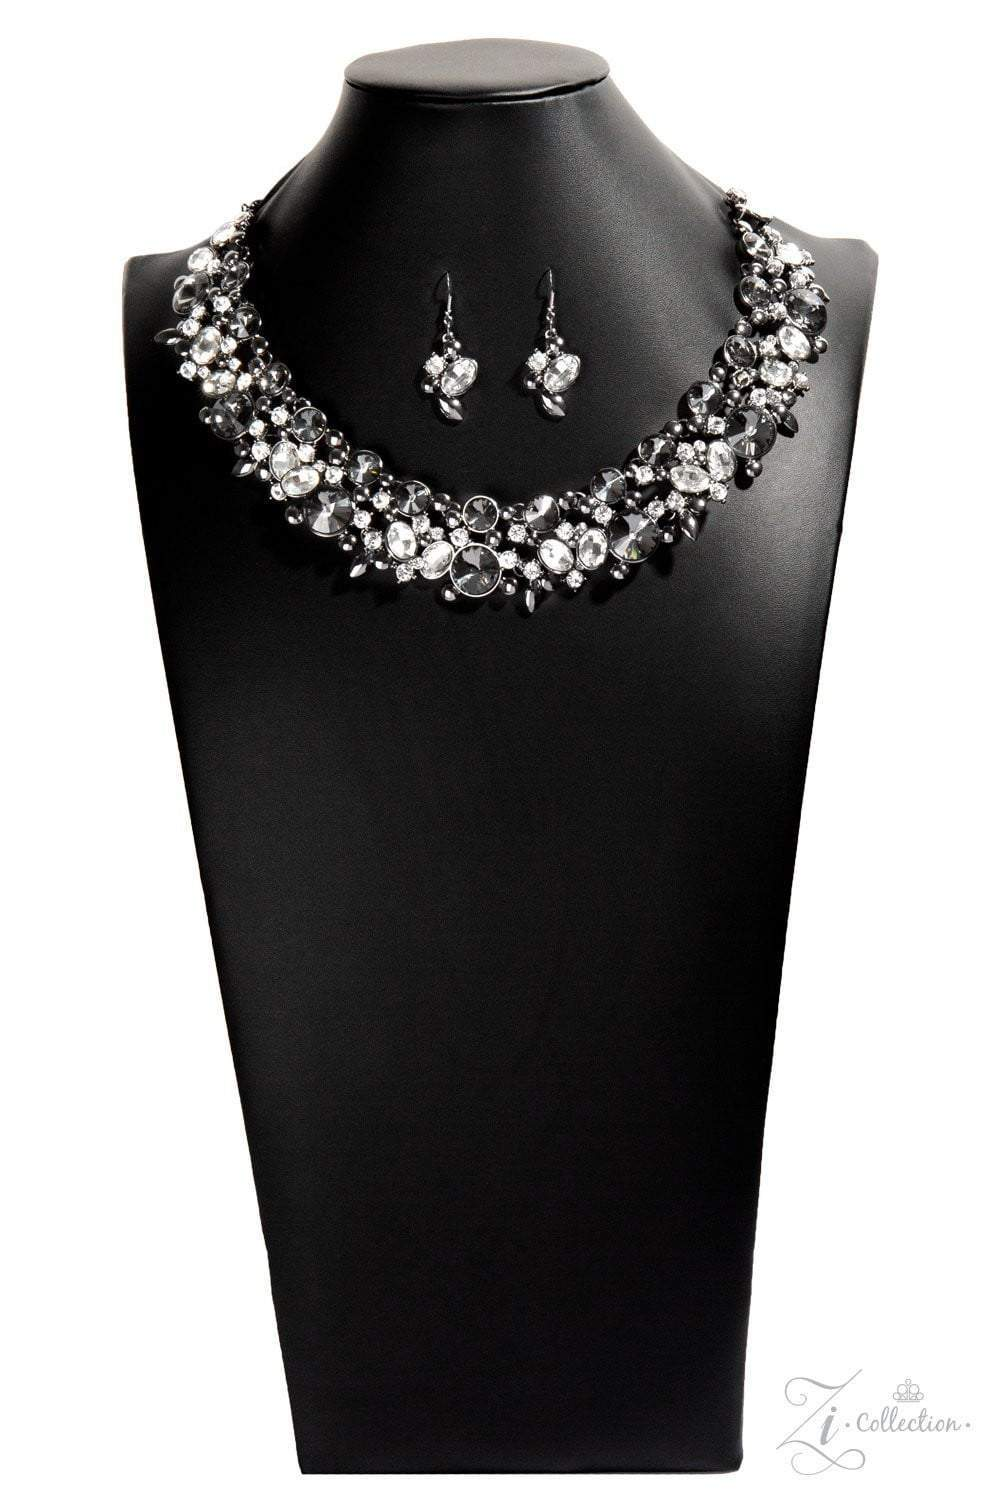 Paparazzi Phenomenon Necklace - 2018 Zi Collection - Bling It On Online